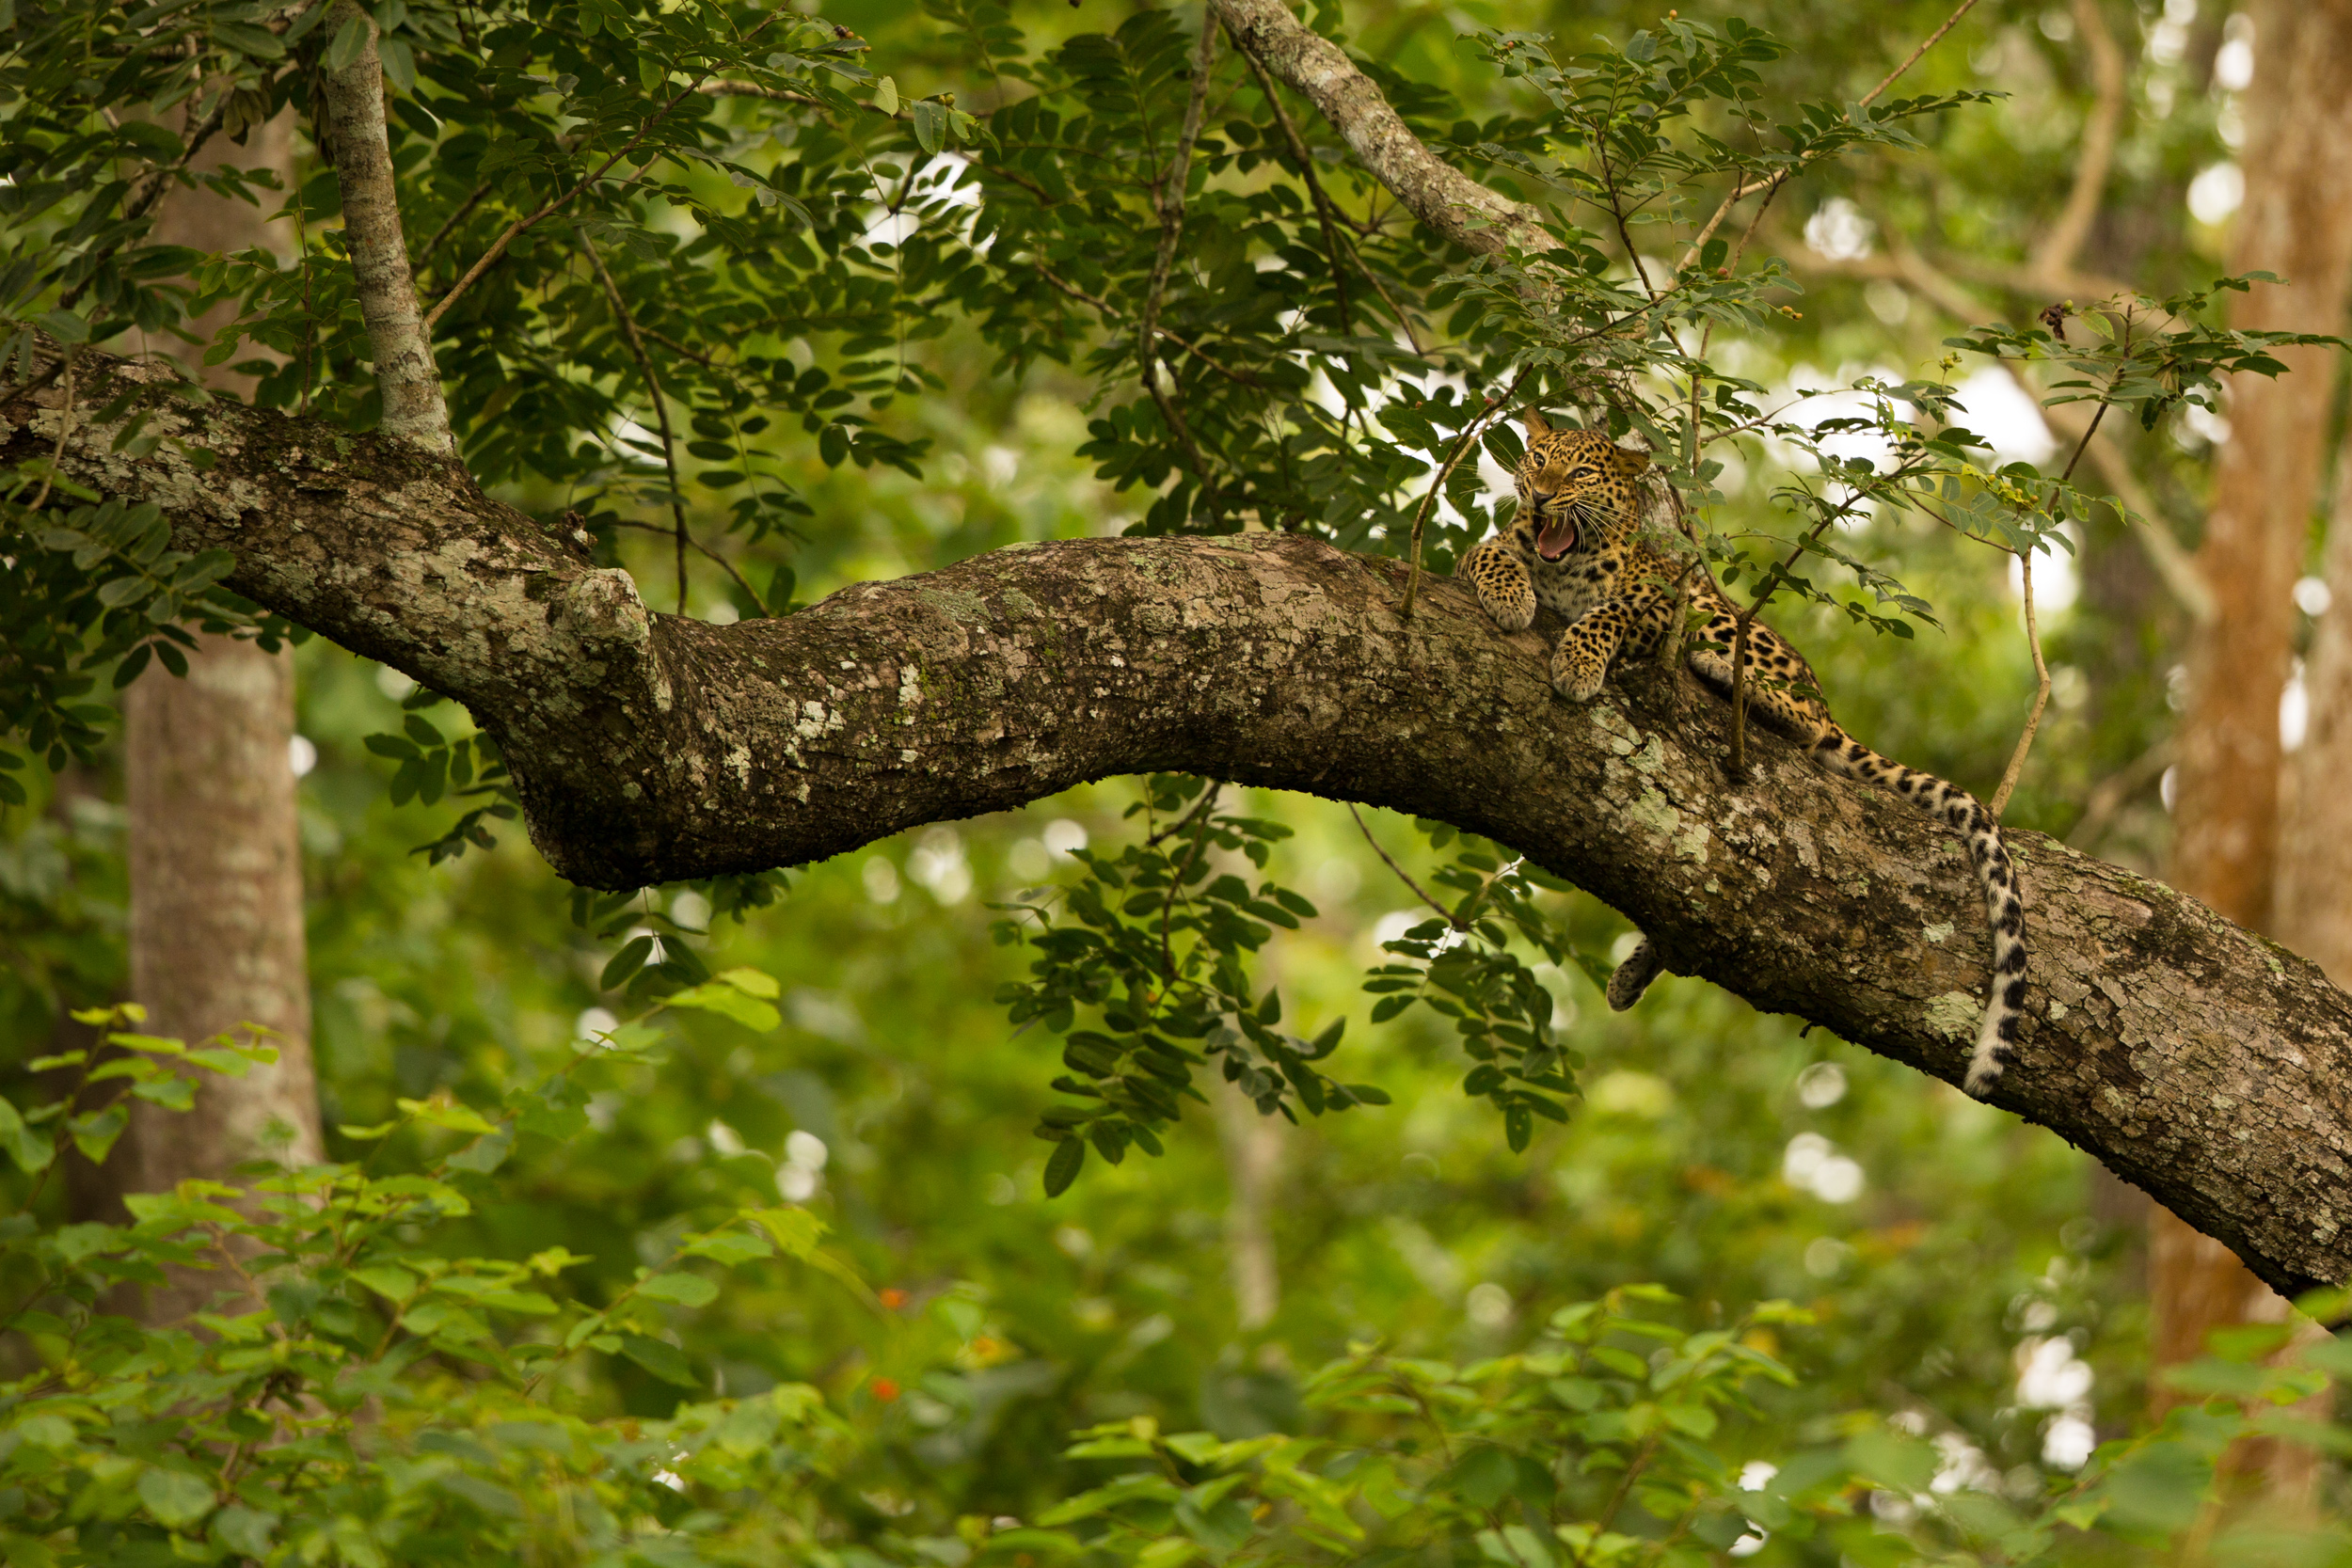 Now that I nailed the record shot, I focused, composed and waiting for the leopard to yawn... :)